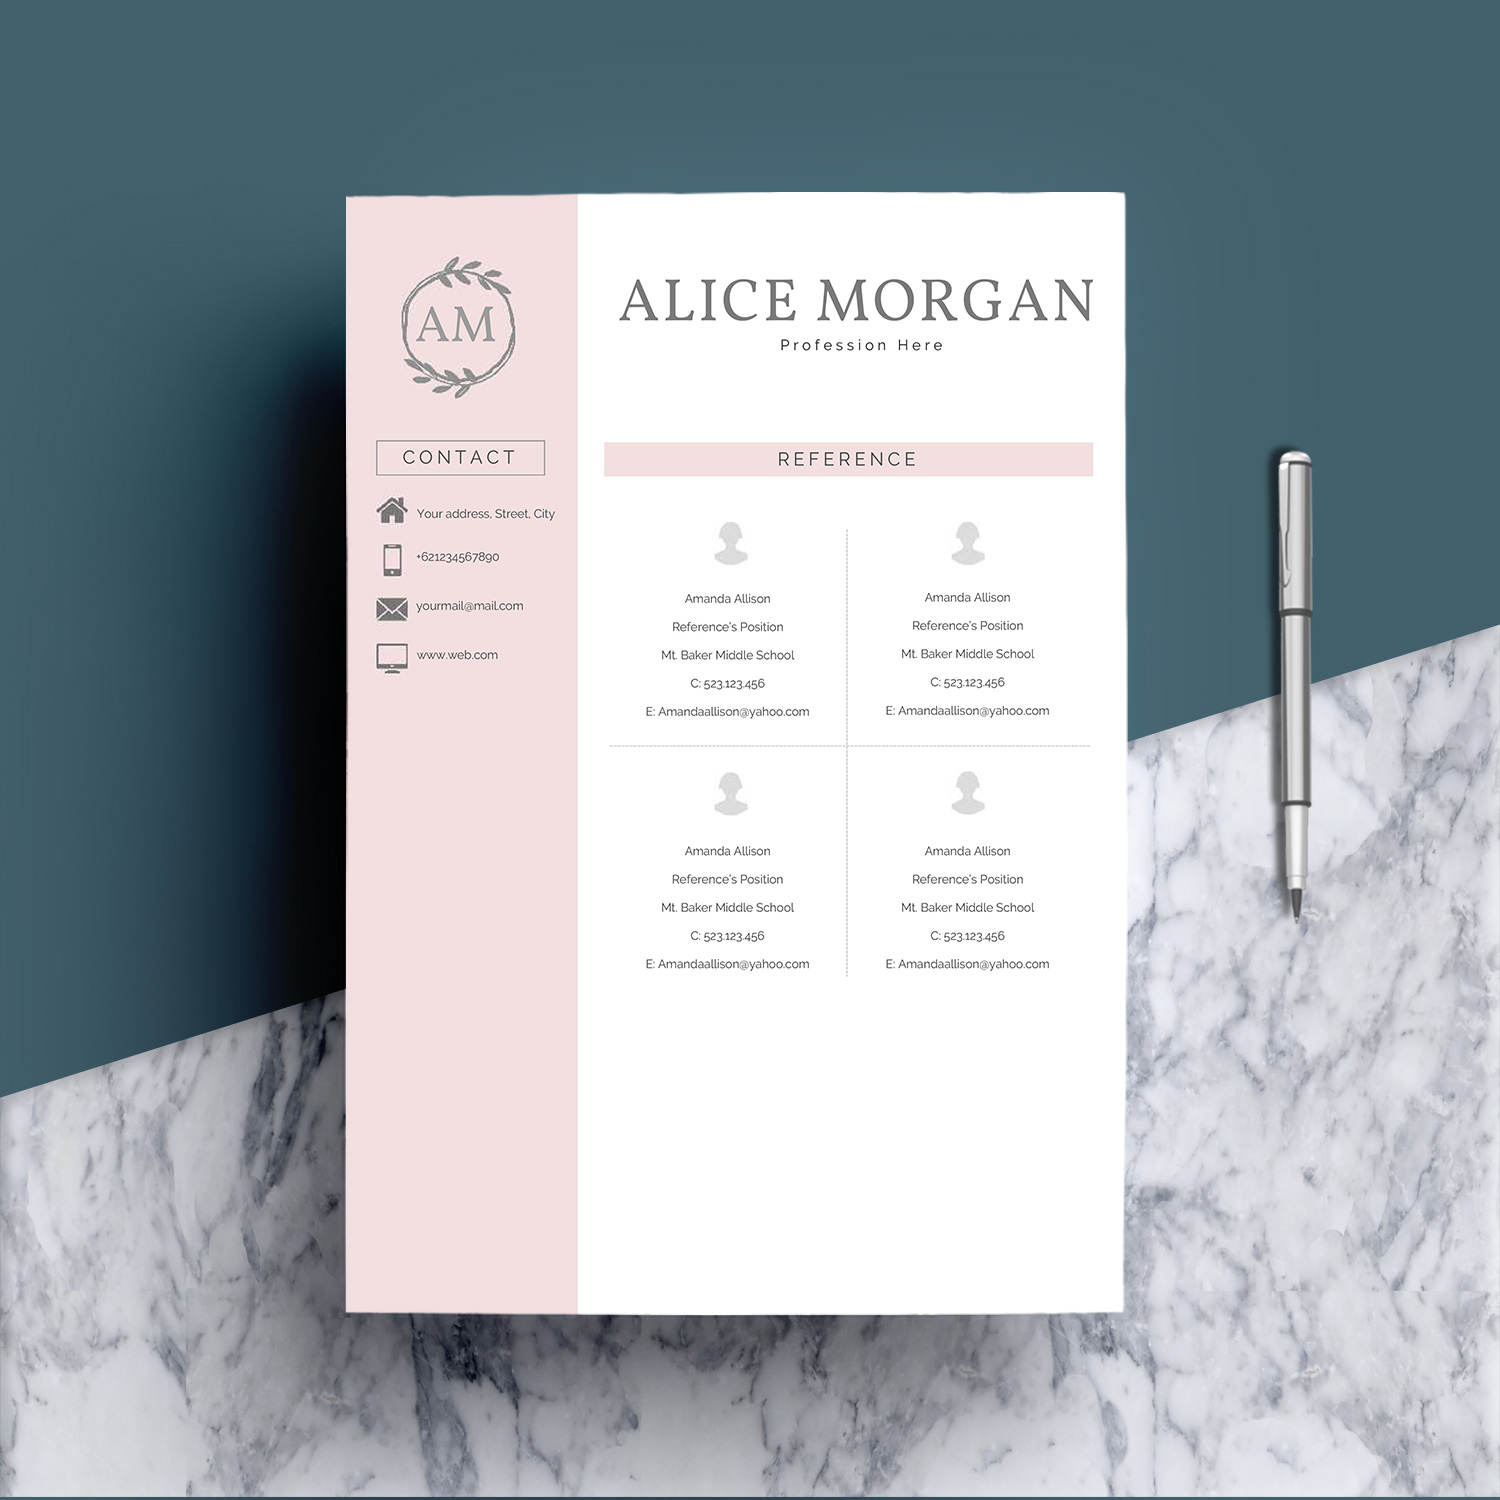 Professional Creative Resume Template - Alice Morgan example image 6